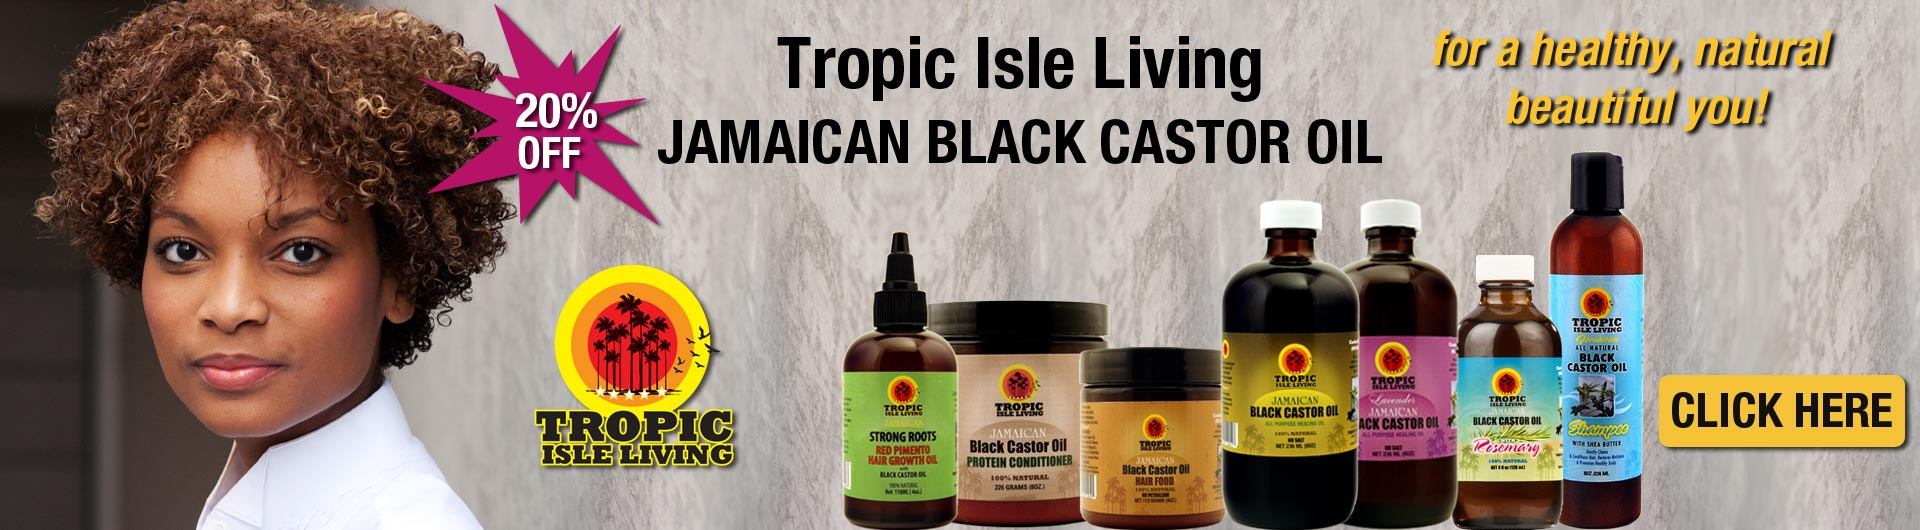 Tropic Isle Living JBCO for a healthy,  natural beautiful you!